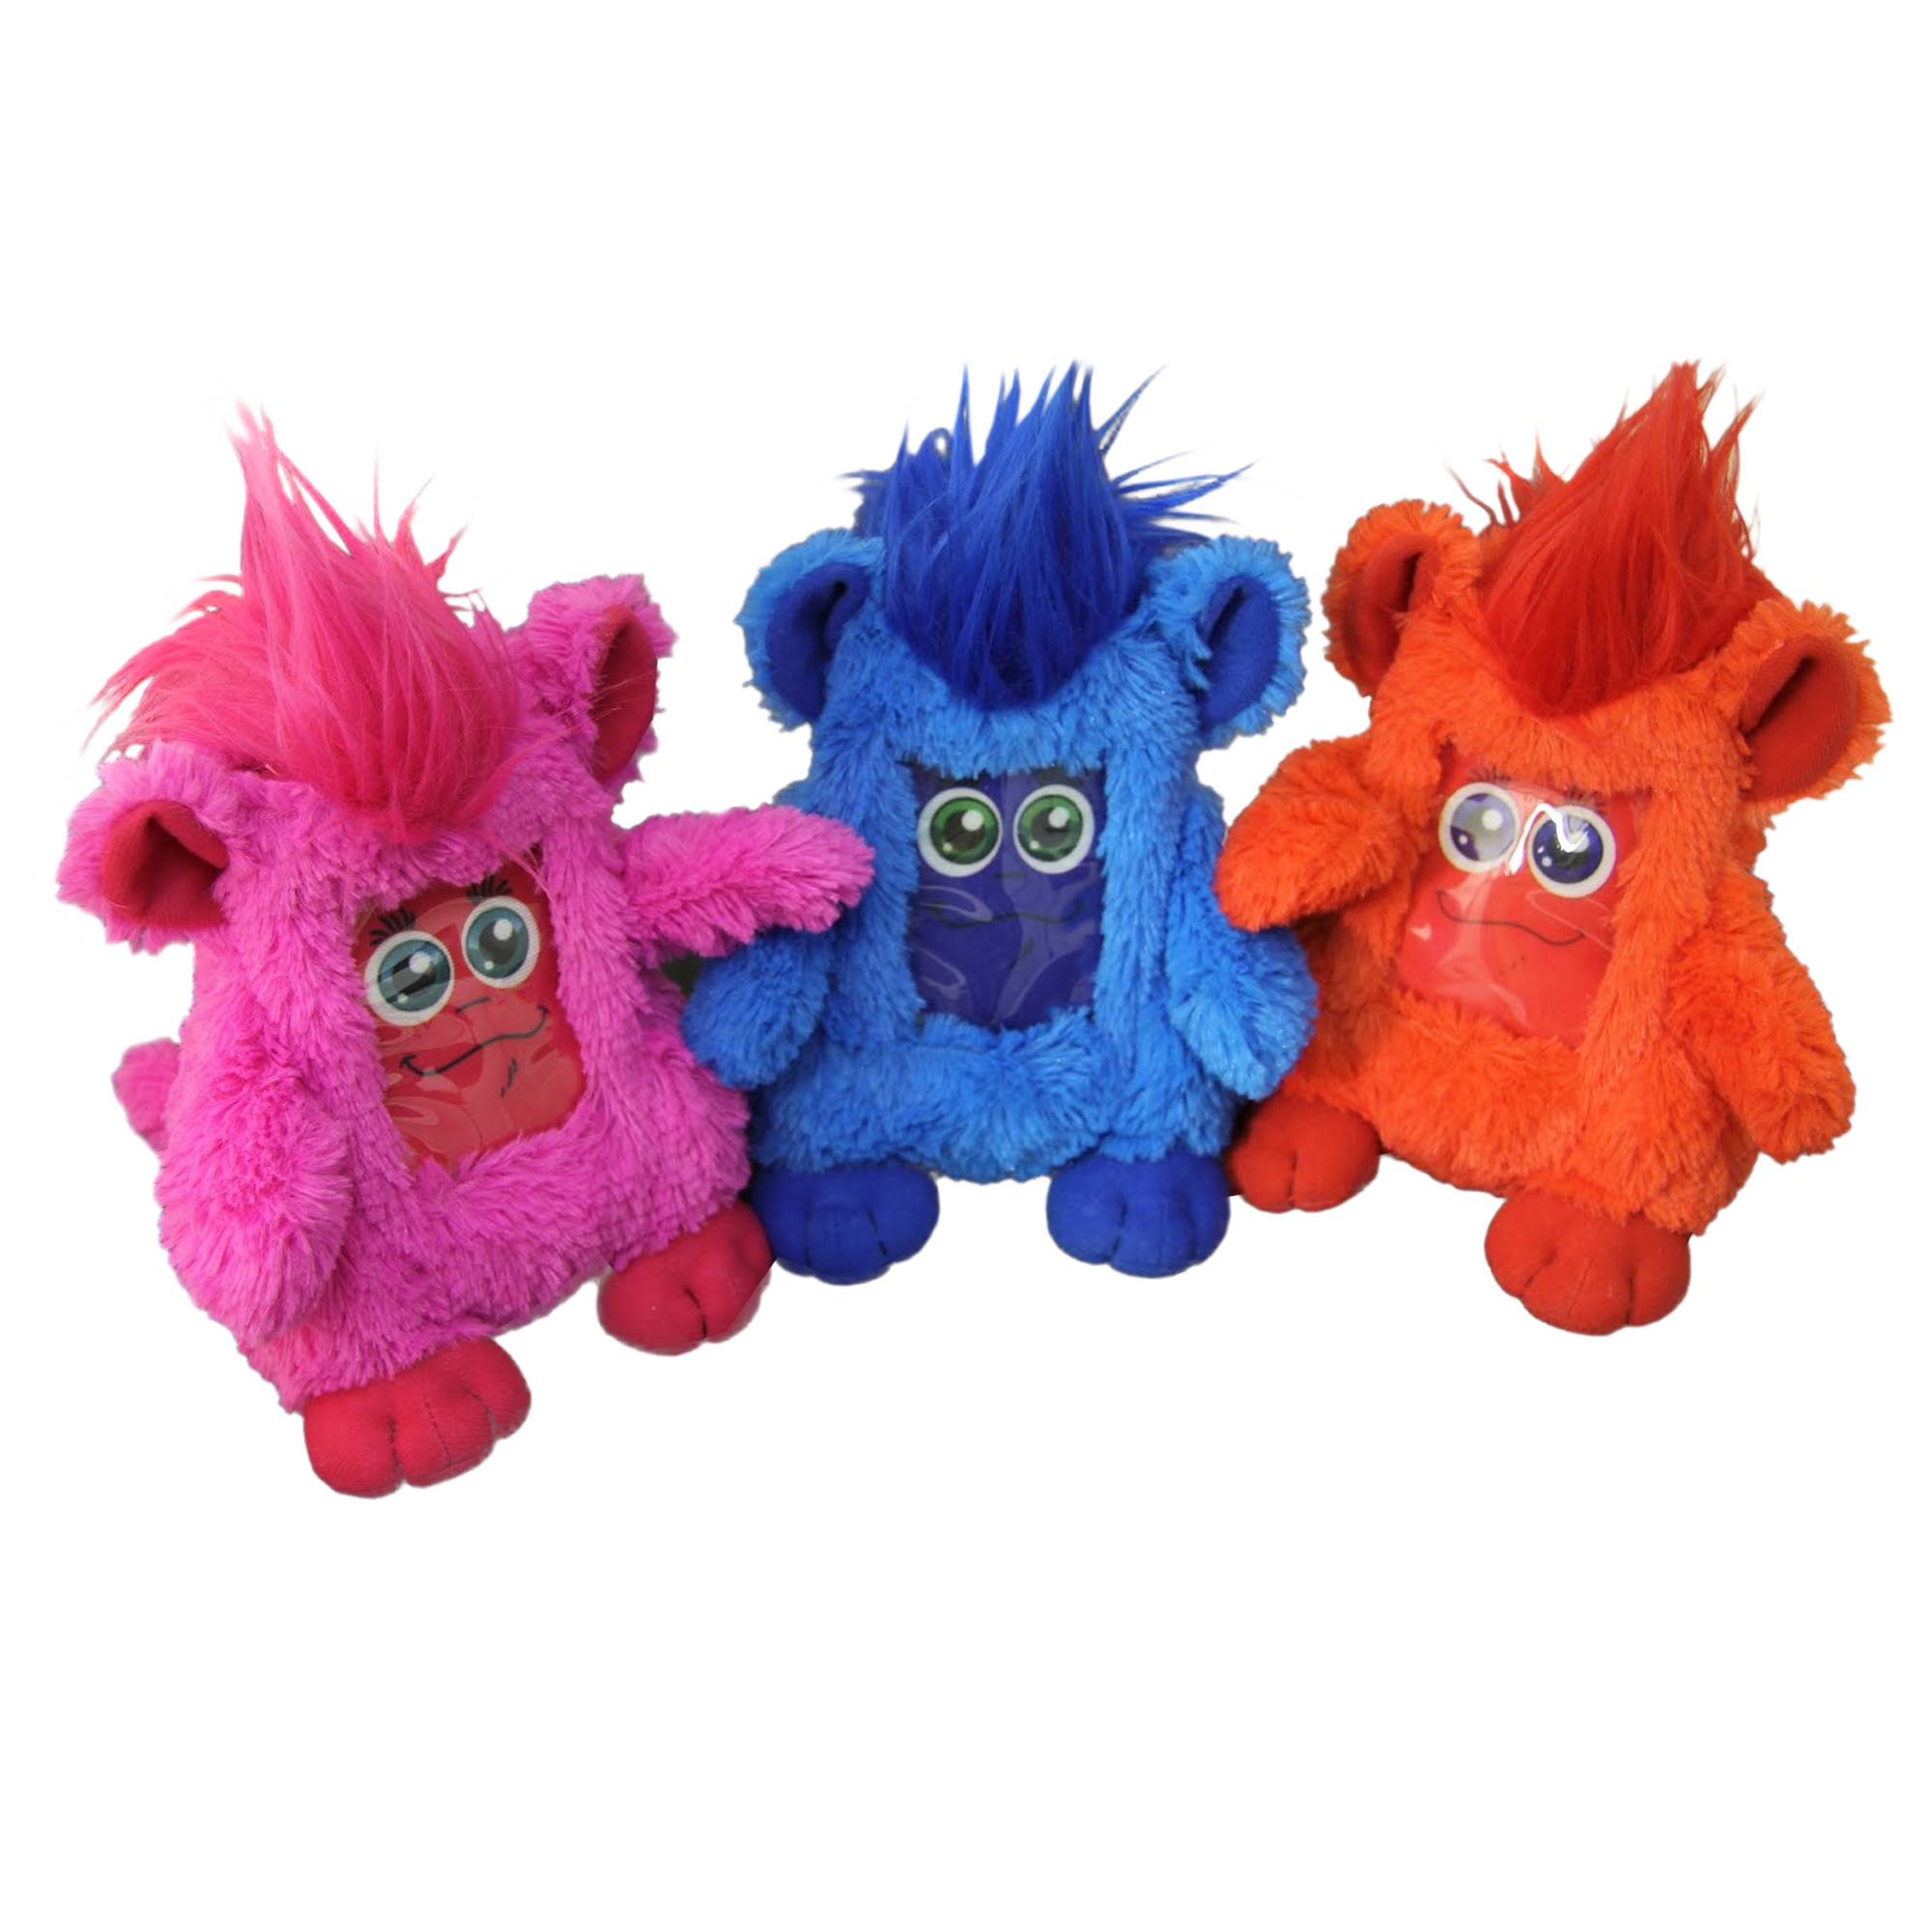 Image of Applingz Interactive Cuddly Toy